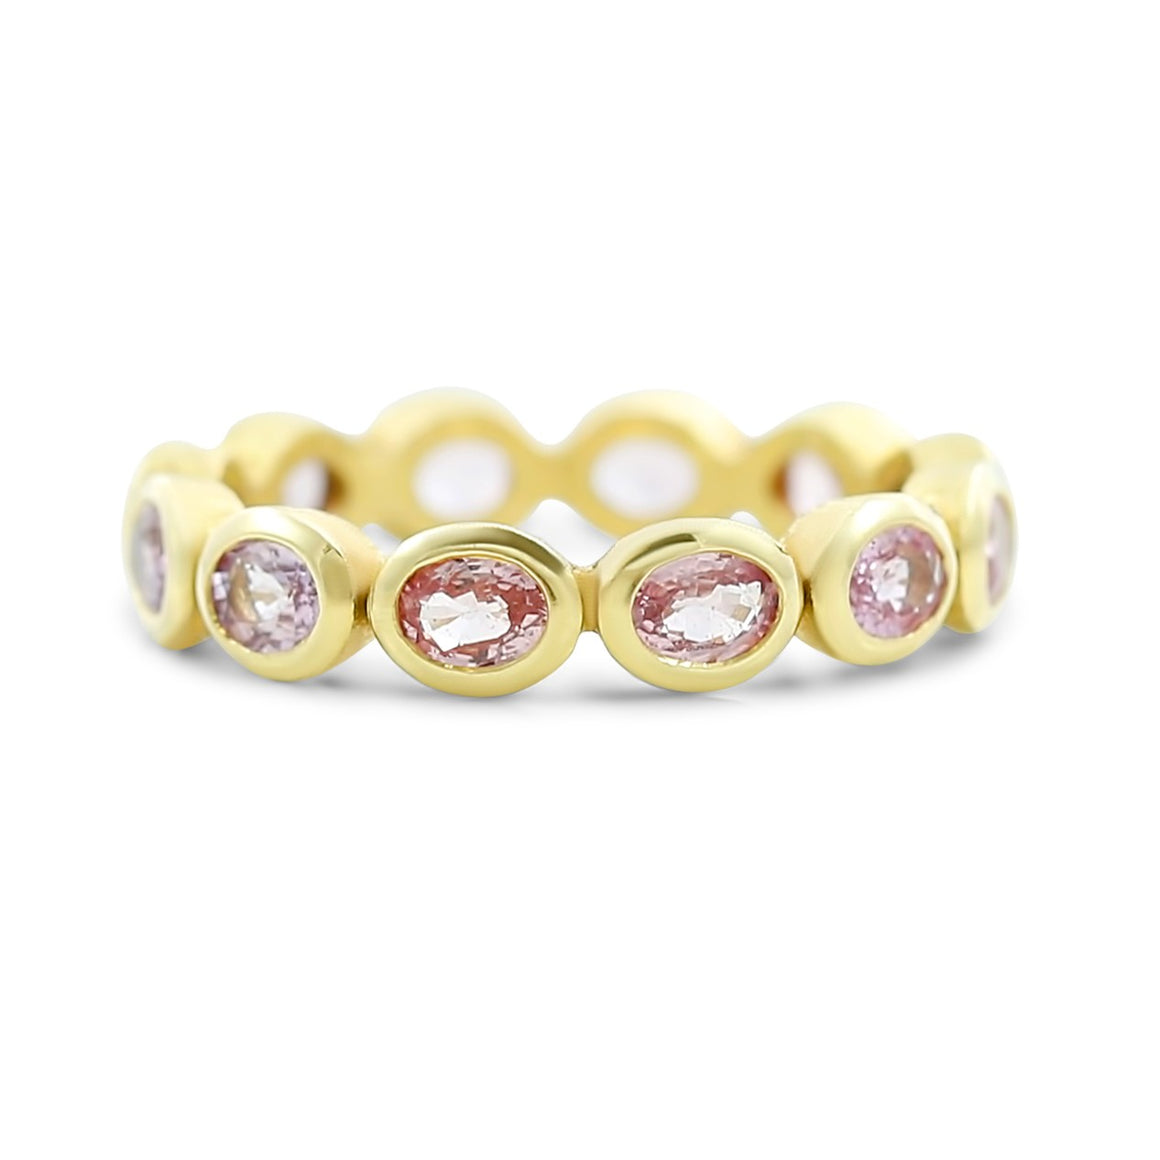 pastel pink sapphire eternity band with bezel set sapphires all the way around the band 18k yellow gold